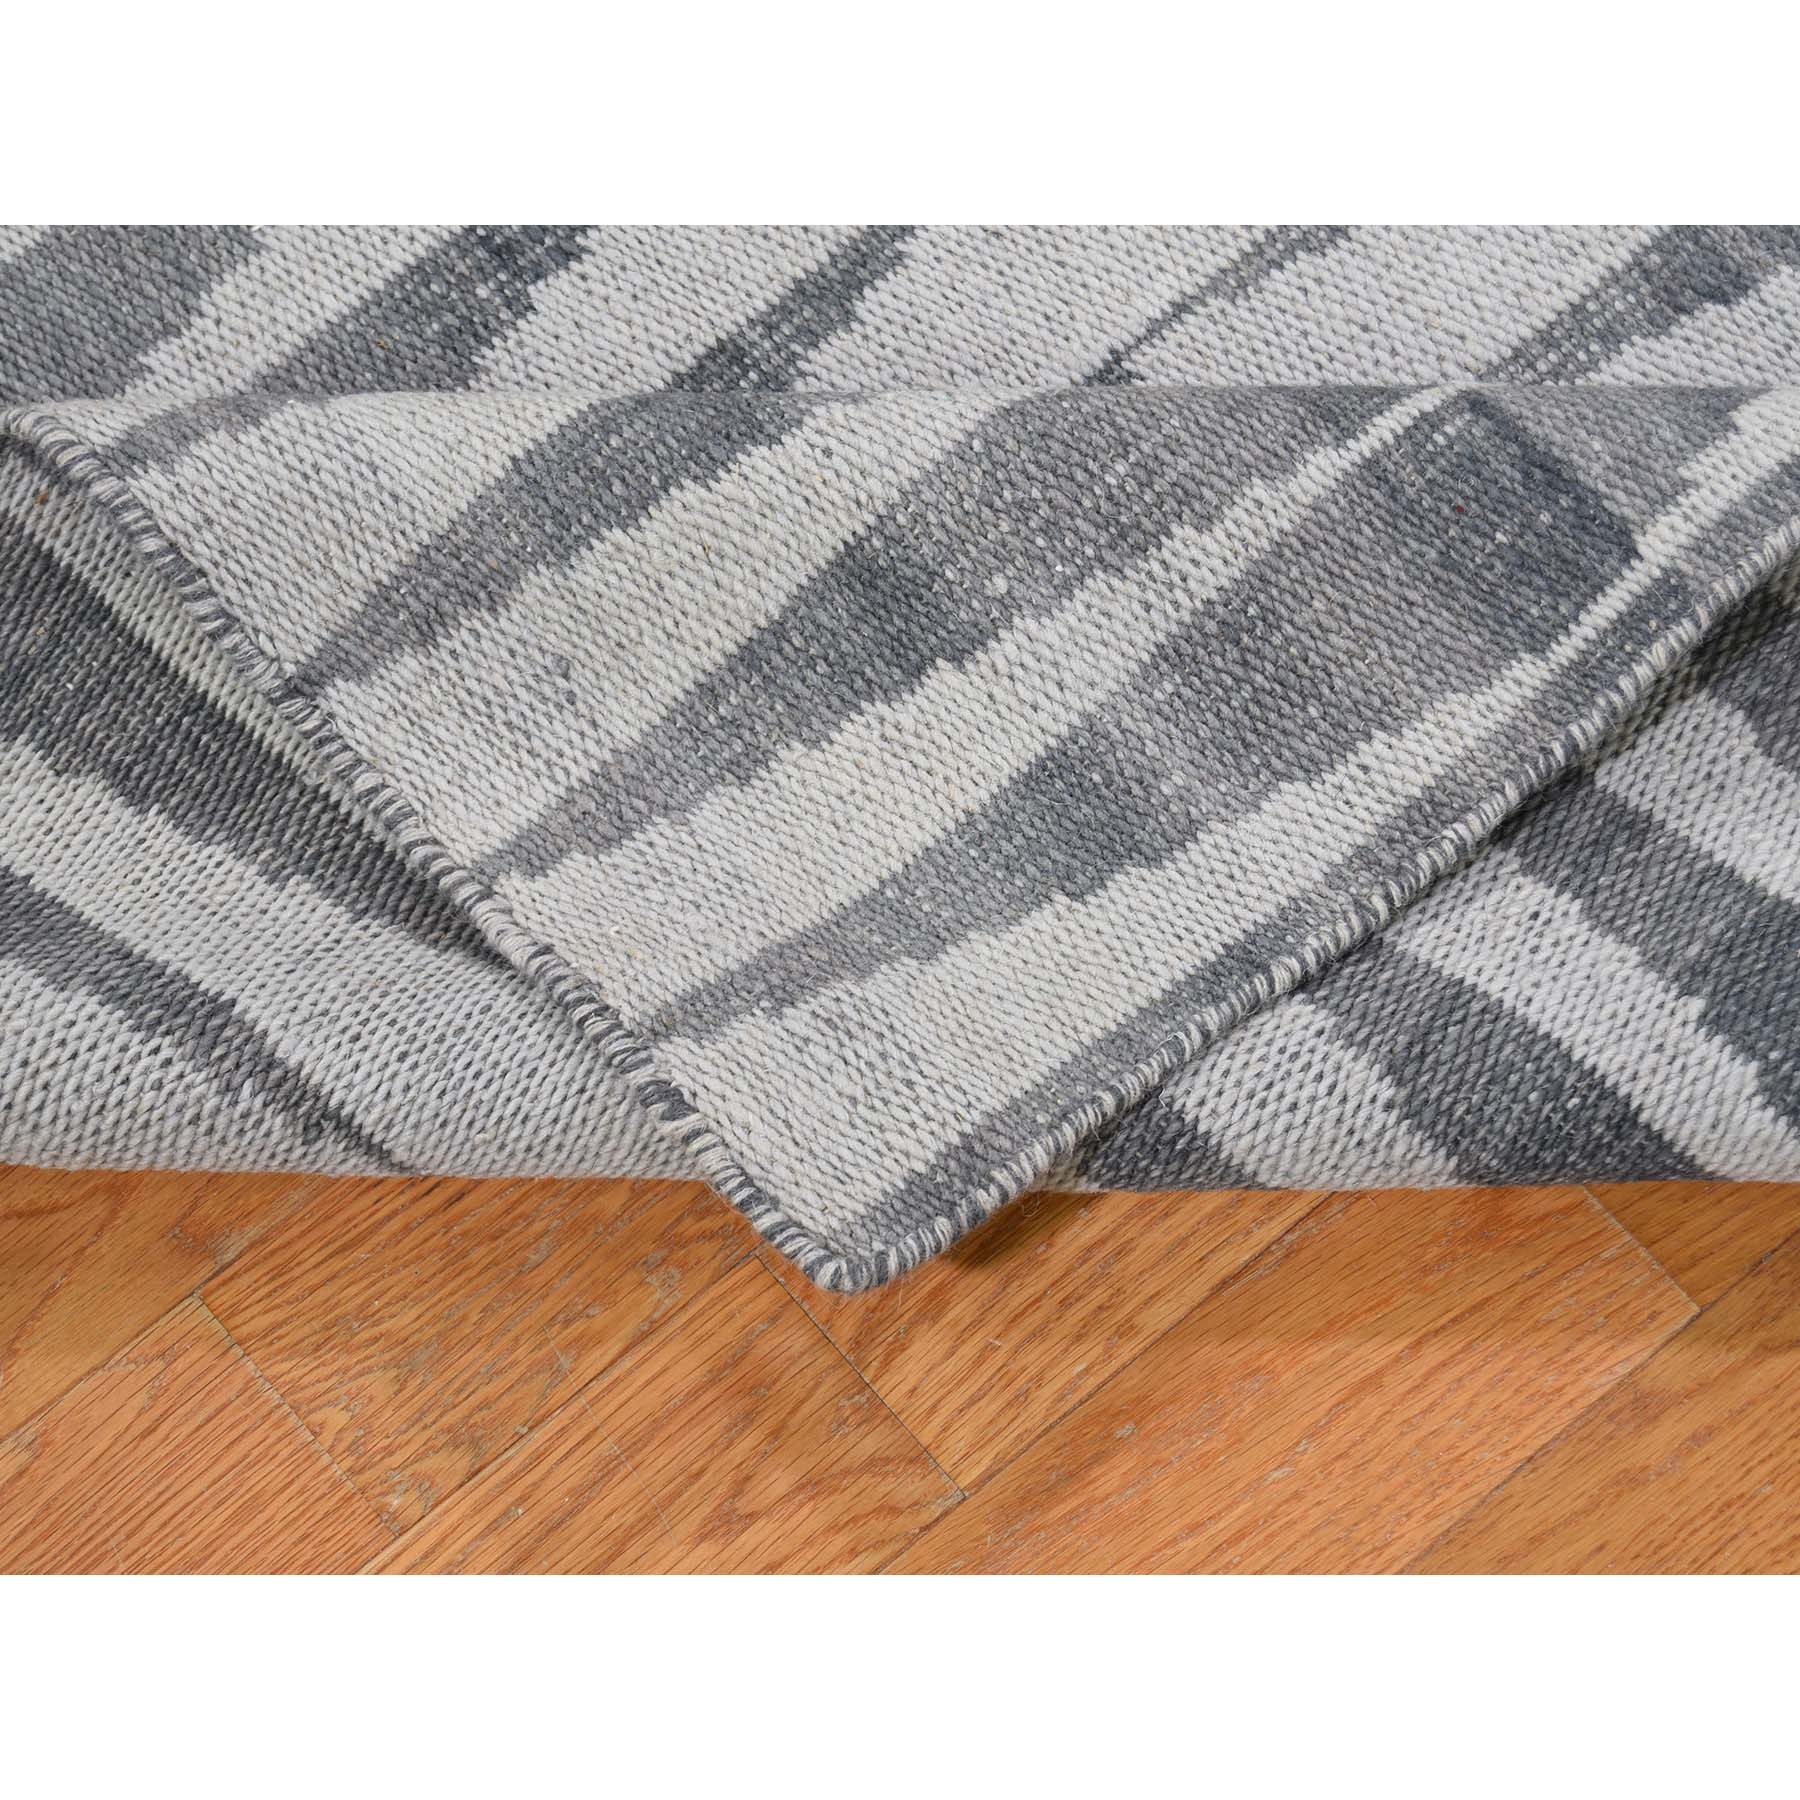 2-7 x11-8  Flat Weave Hand Woven Durie Kilim Reversible Oriental Rug